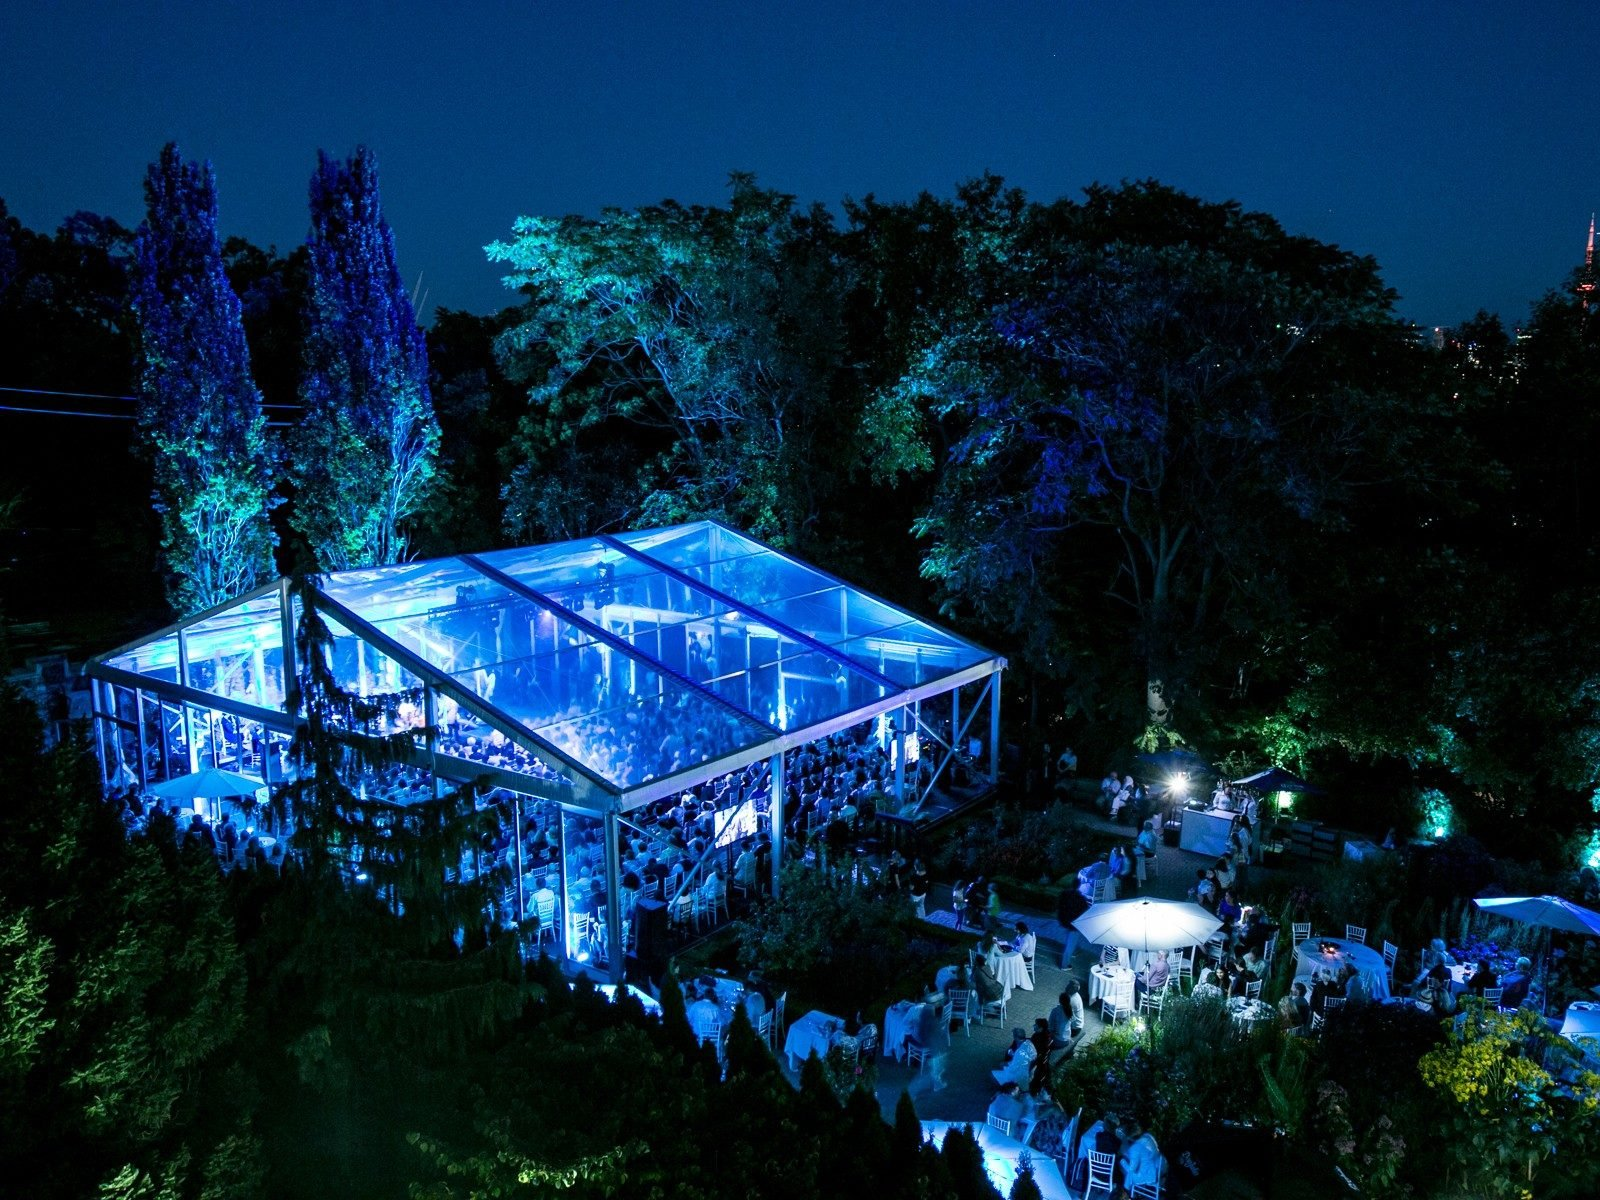 28. Summer Symphony in the Gardens